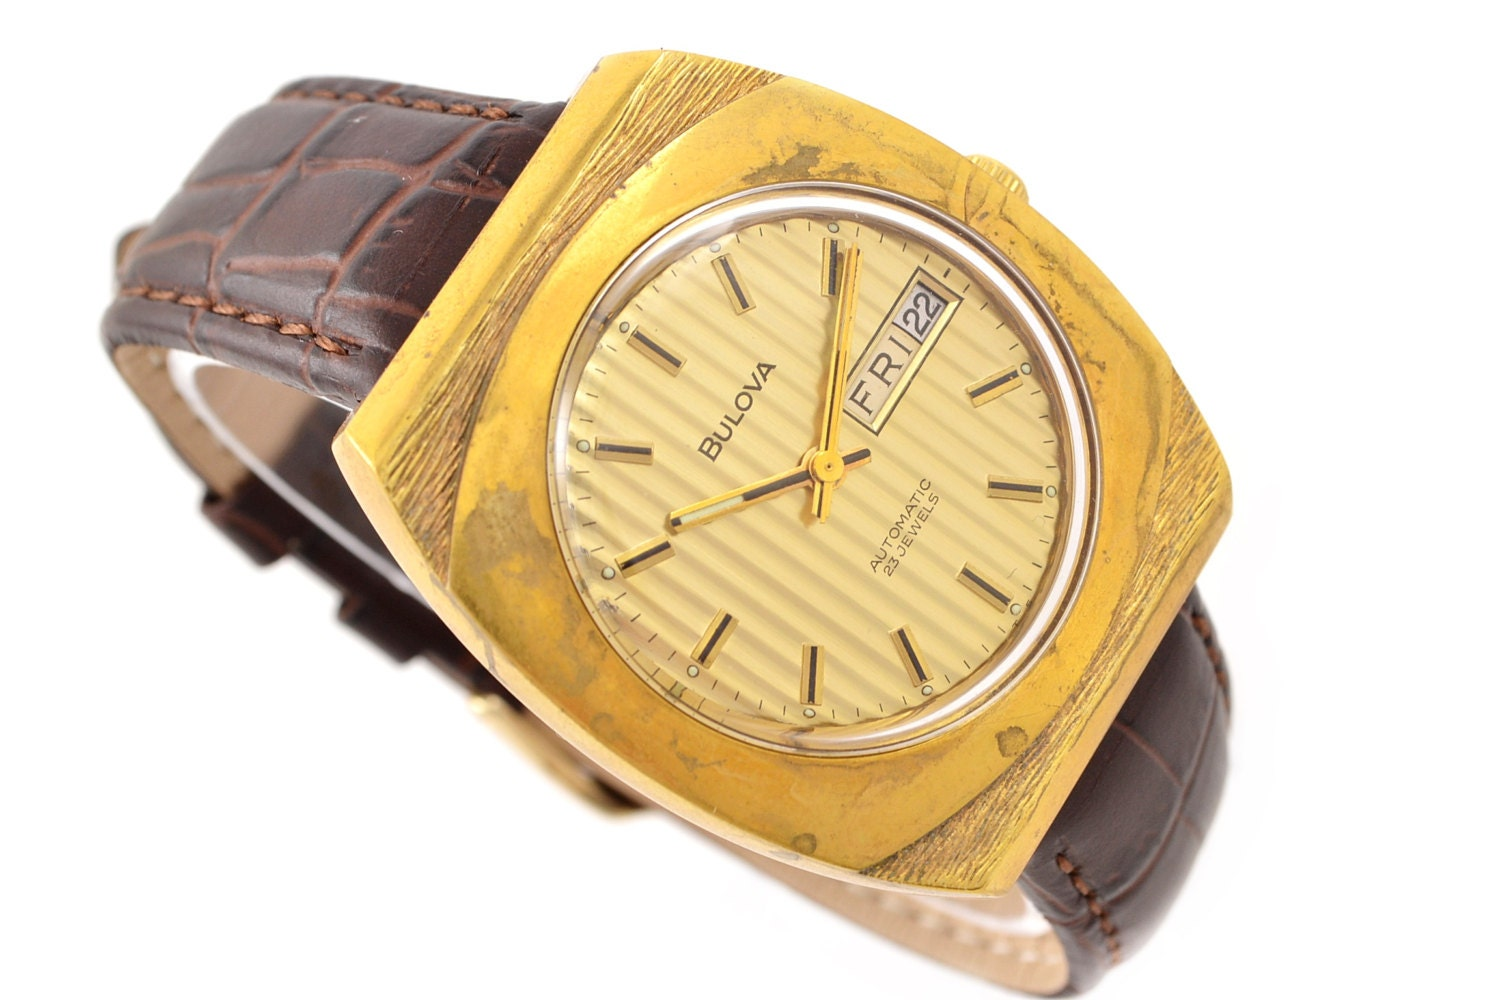 Vintage Bulova Classic Gold Plated Mens Automatic Watch 1211  Make me an offer!